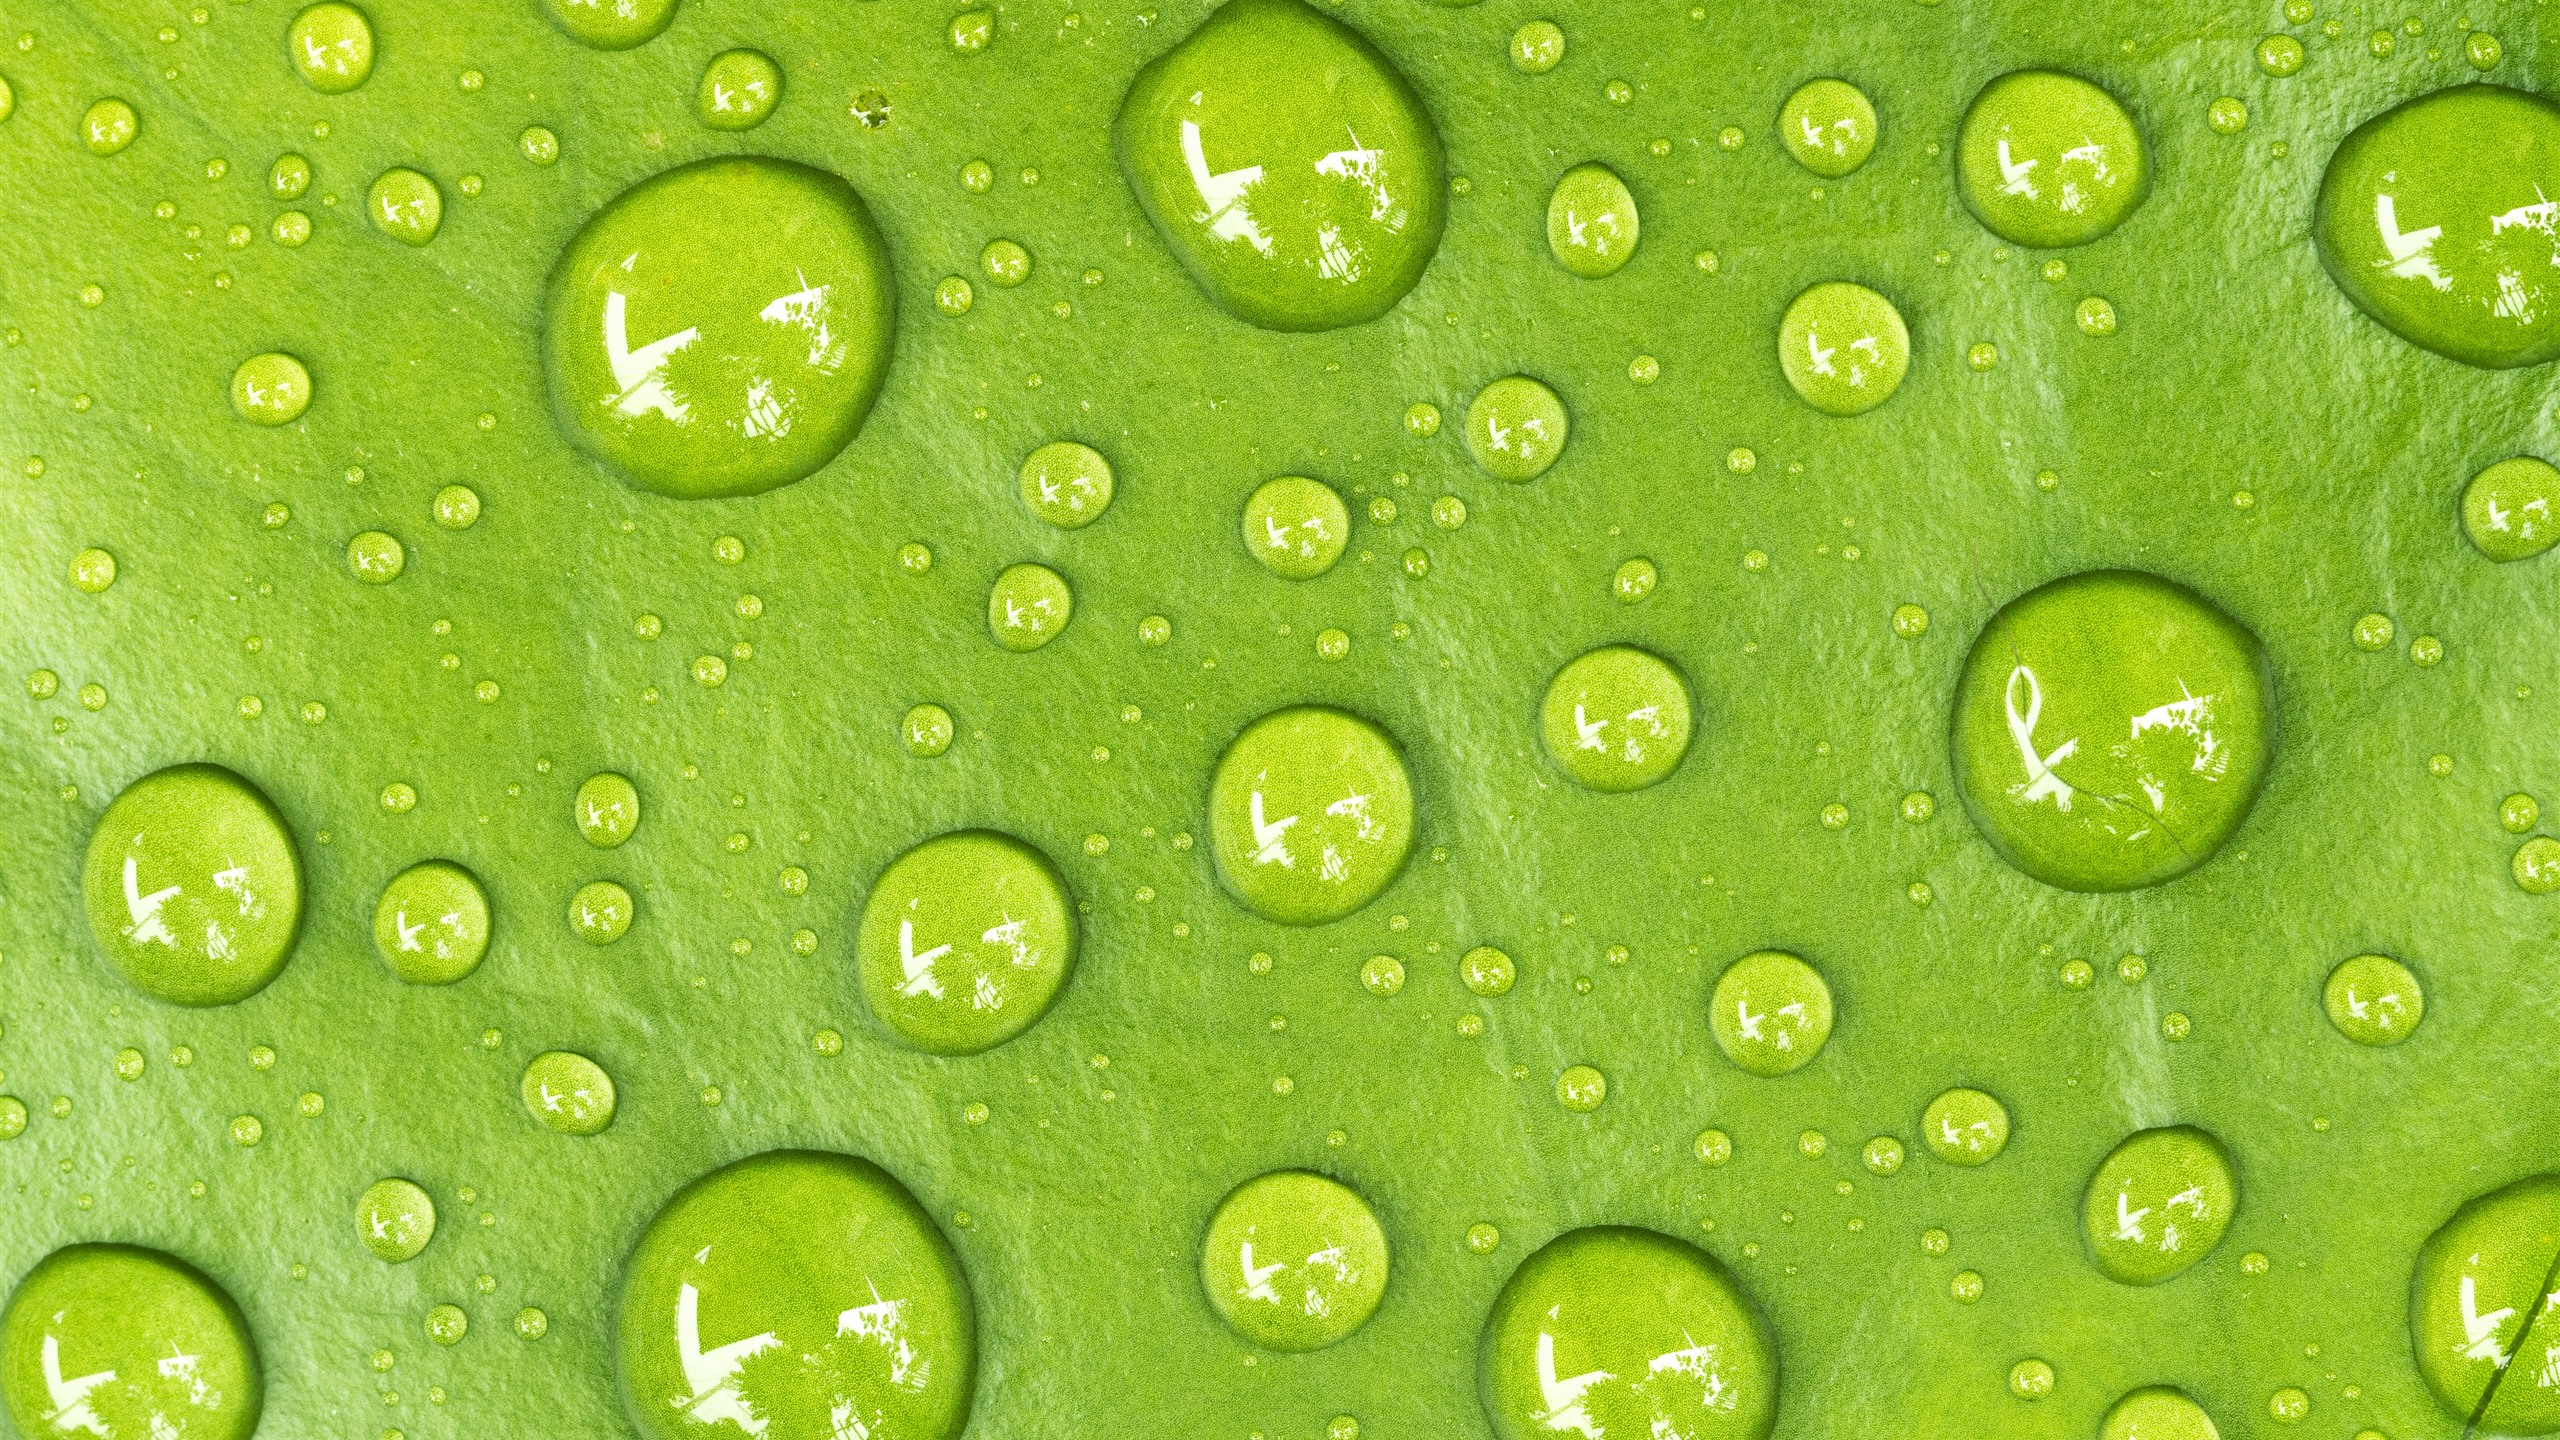 Green Leaf Water Droplets Macro Photography 1242x2688